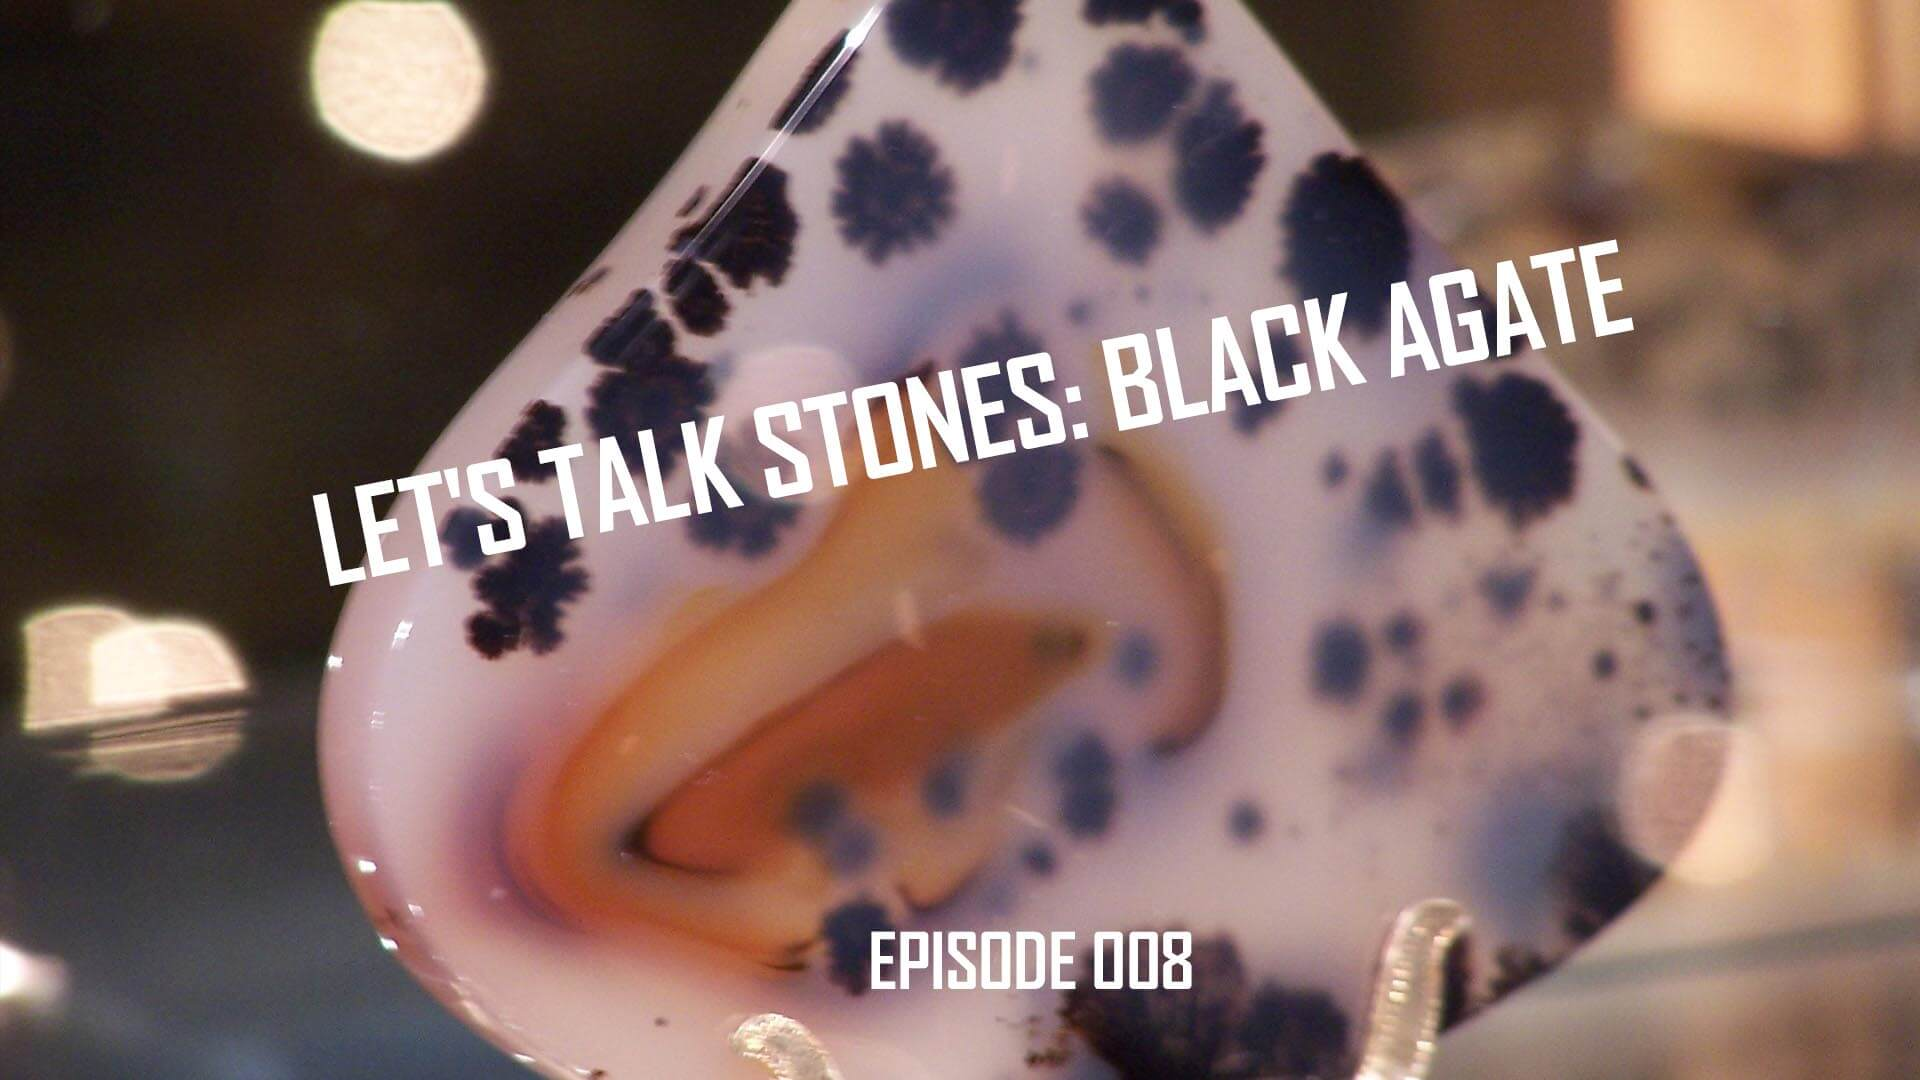 Let's Talk Stones: Black Agate Beads and Metaphysical World